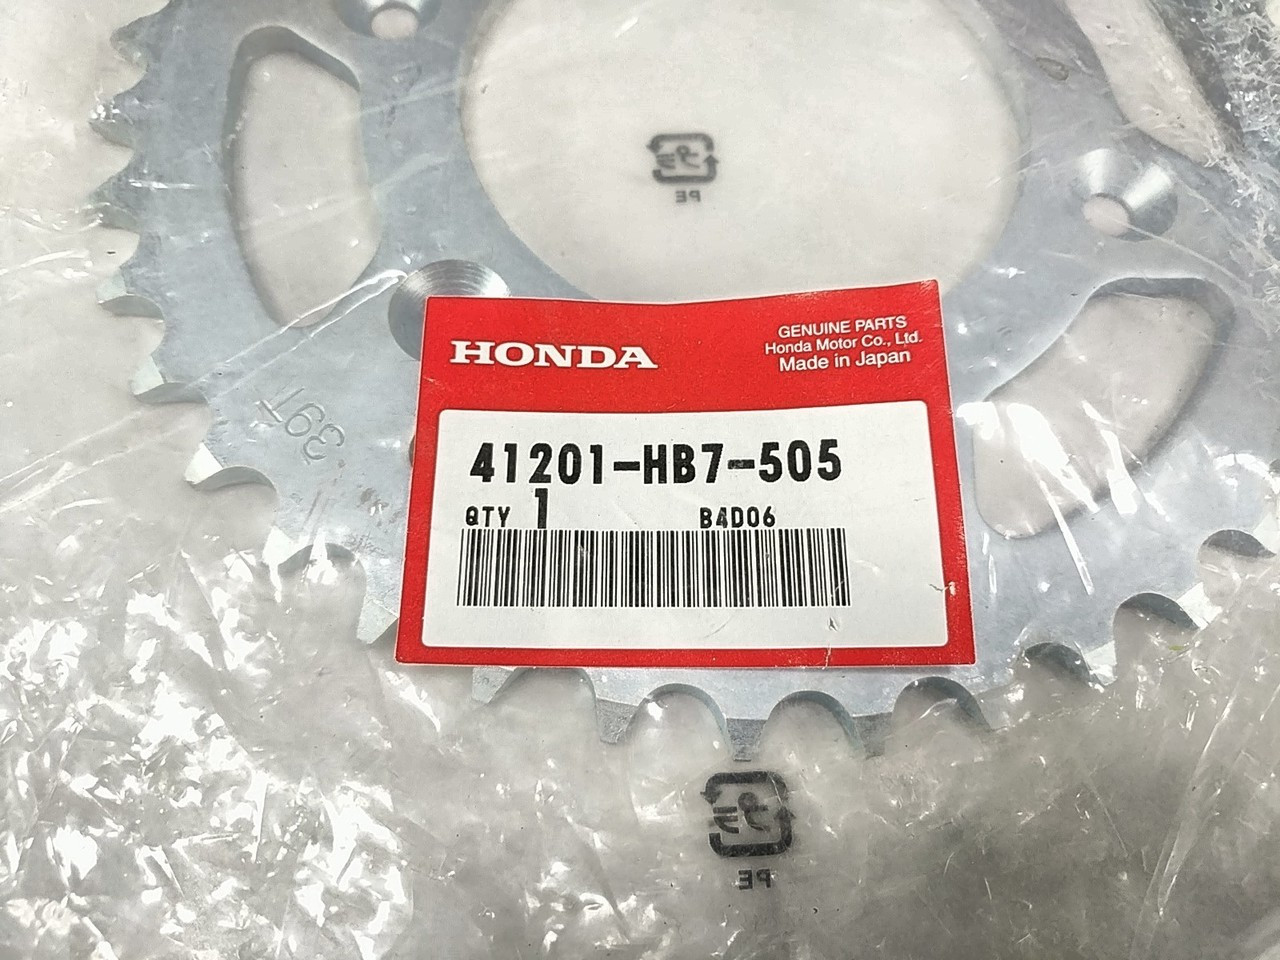 Honda OEM Rear Sprocket 39T 41201-HB7-505